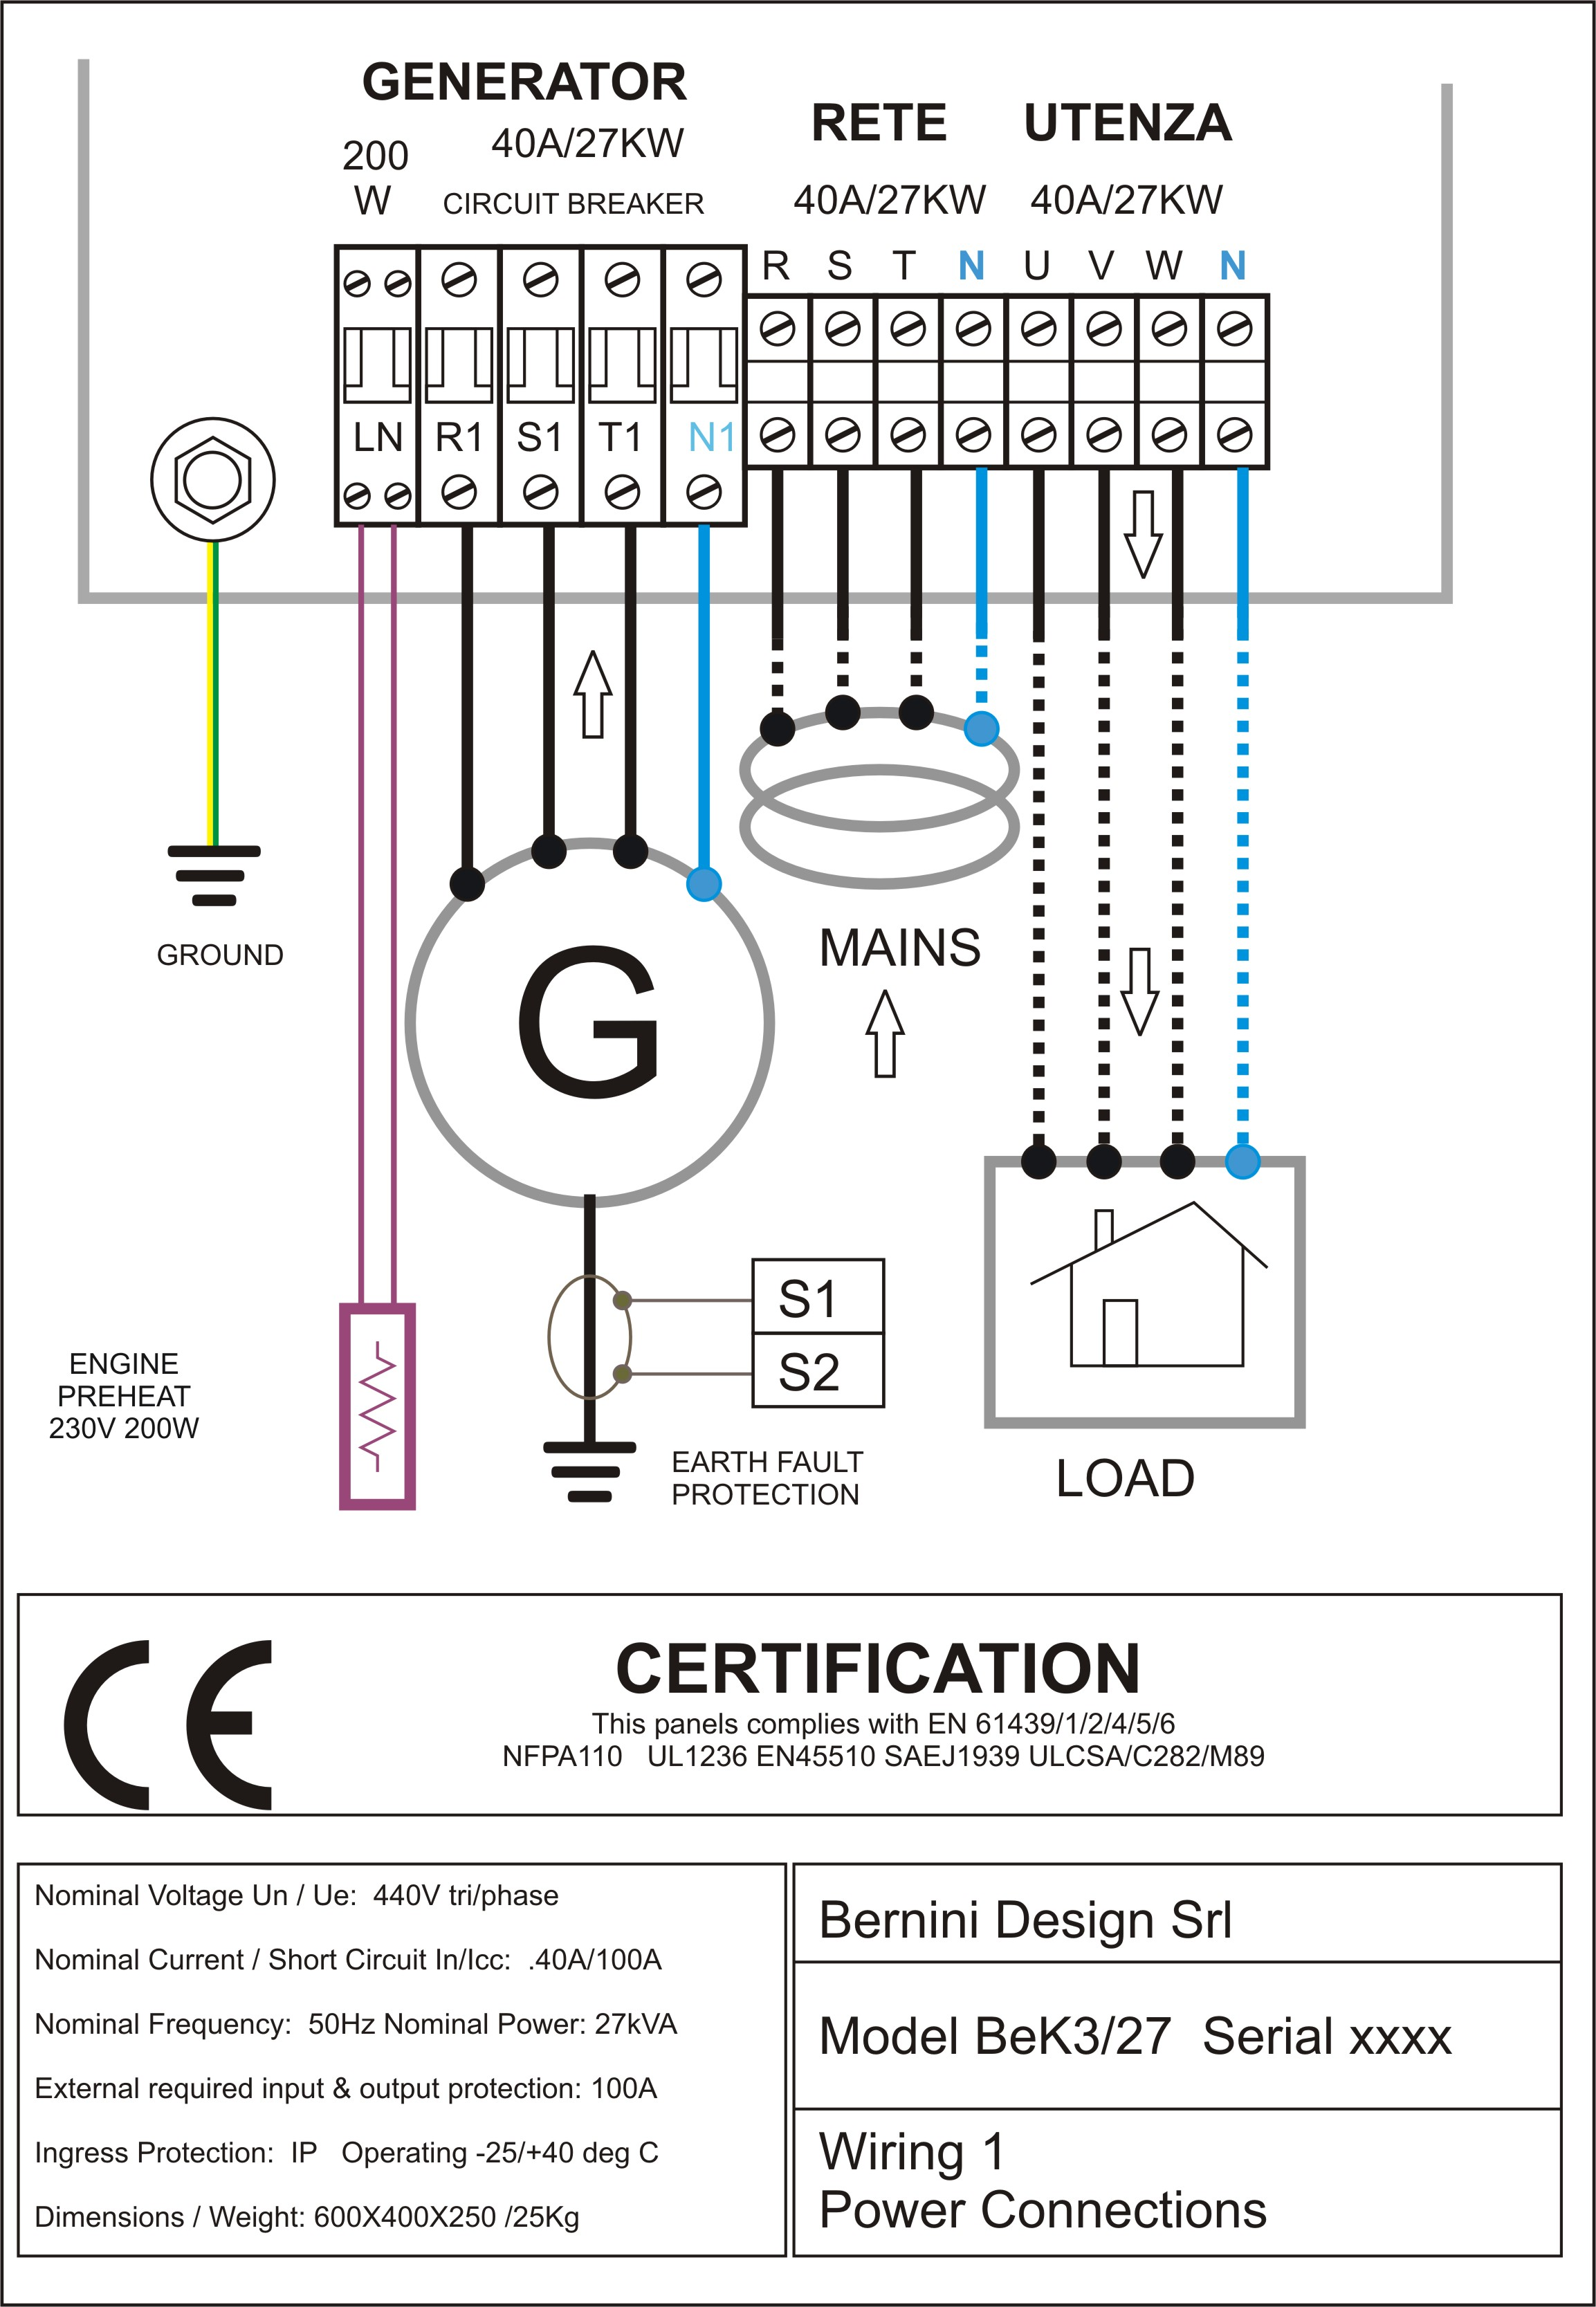 Diesel Generator Control Panel Wiring Diagram AC Connections?resize\\\\\\\\\\\\\\\=525%2C759\\\\\\\\\\\\\\\&ssl\\\\\\\\\\\\\\\=1 generac xp6500e wiring diagram generac generator parts lookup generac xp6500e wiring diagram at n-0.co